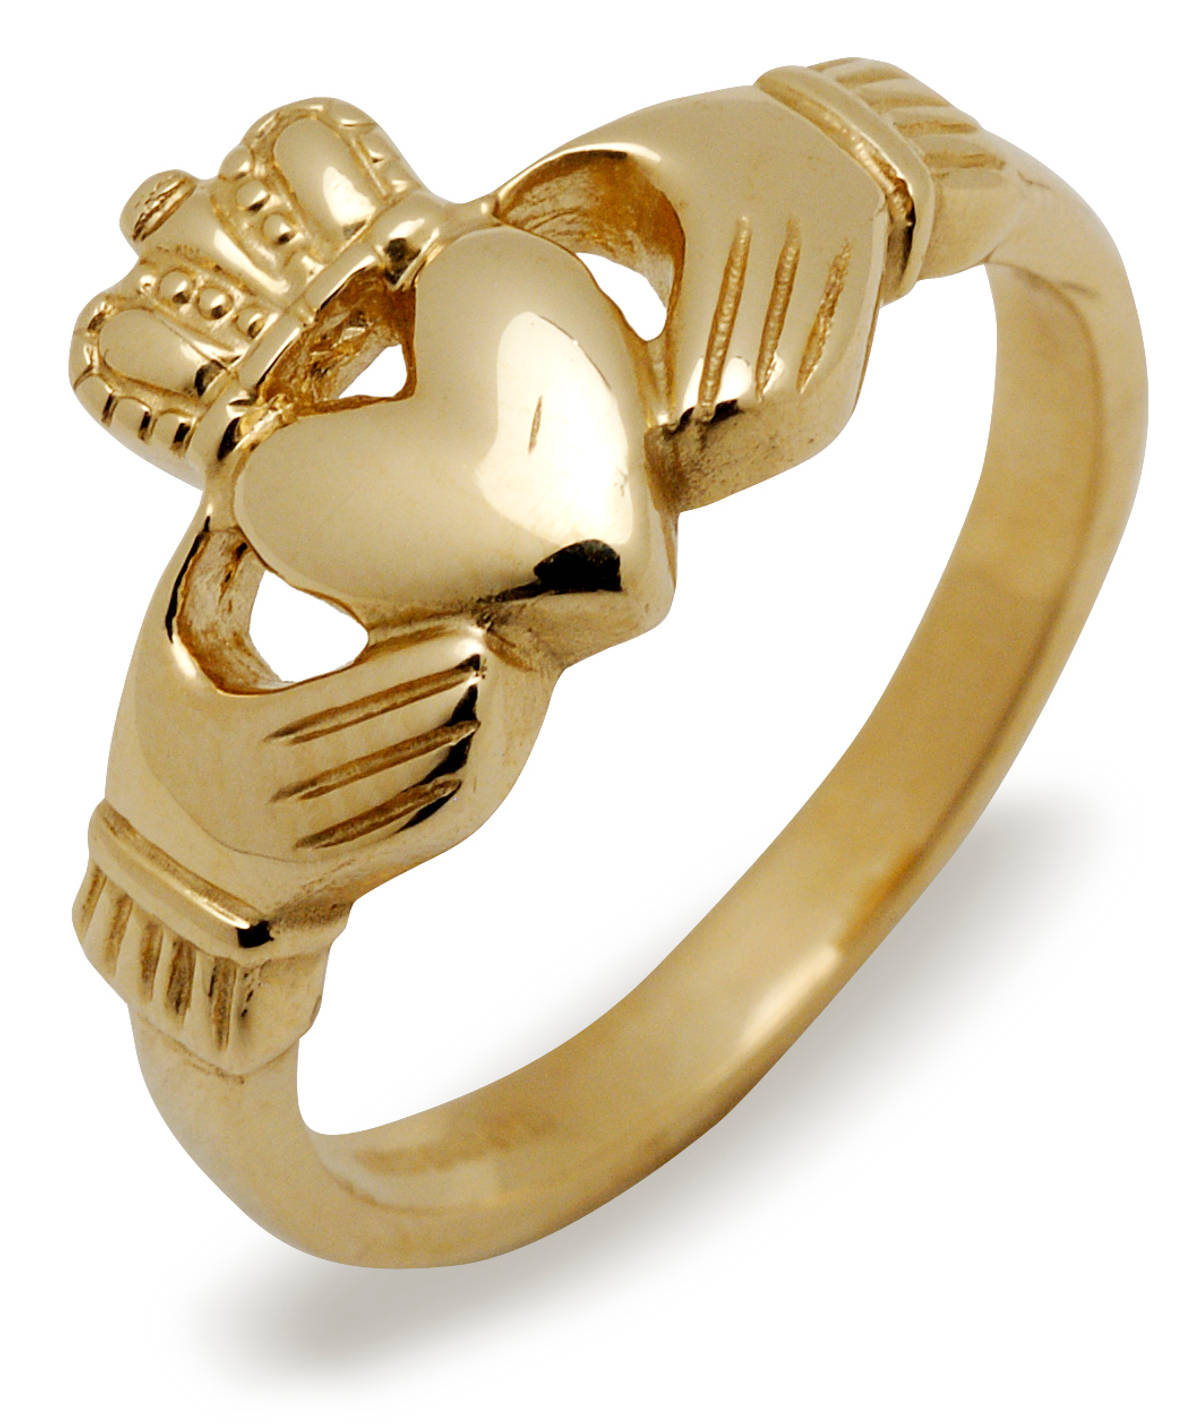 10 carat Claddagh ring